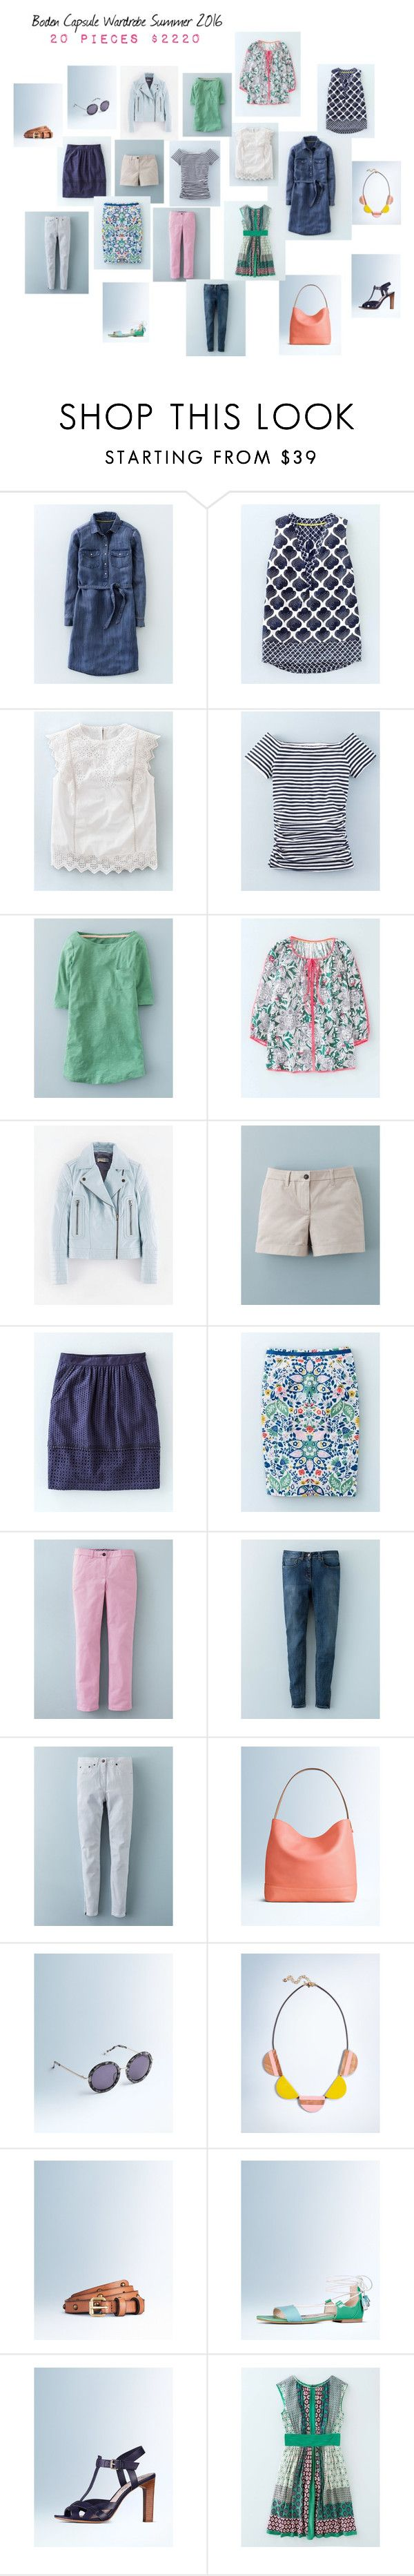 """""""Boden Capsule Wardrobe Summer 2016"""" by juliffthegirl ❤ liked on Polyvore featuring Boden"""